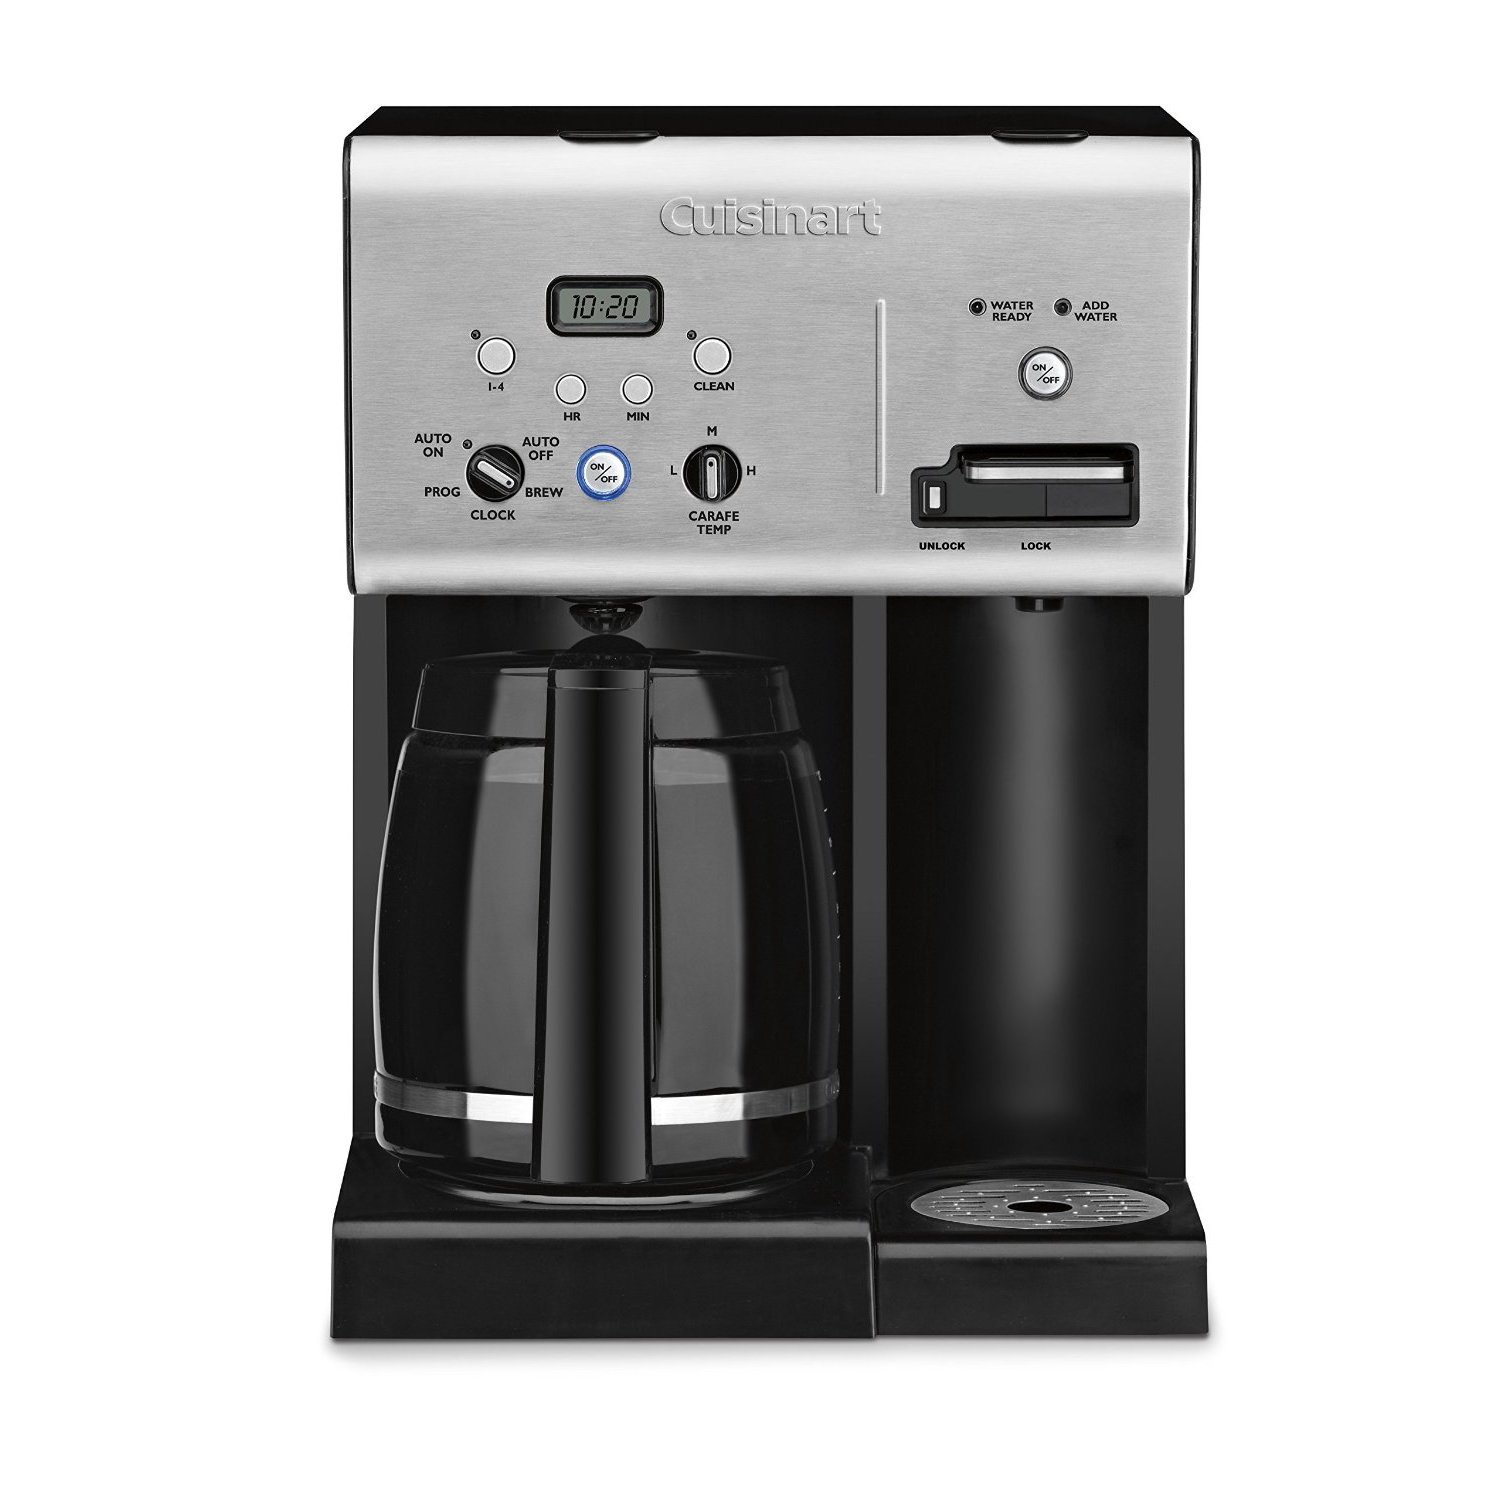 Cuisinart 12-cup Programmable Coffee Maker (Certified Refubished)